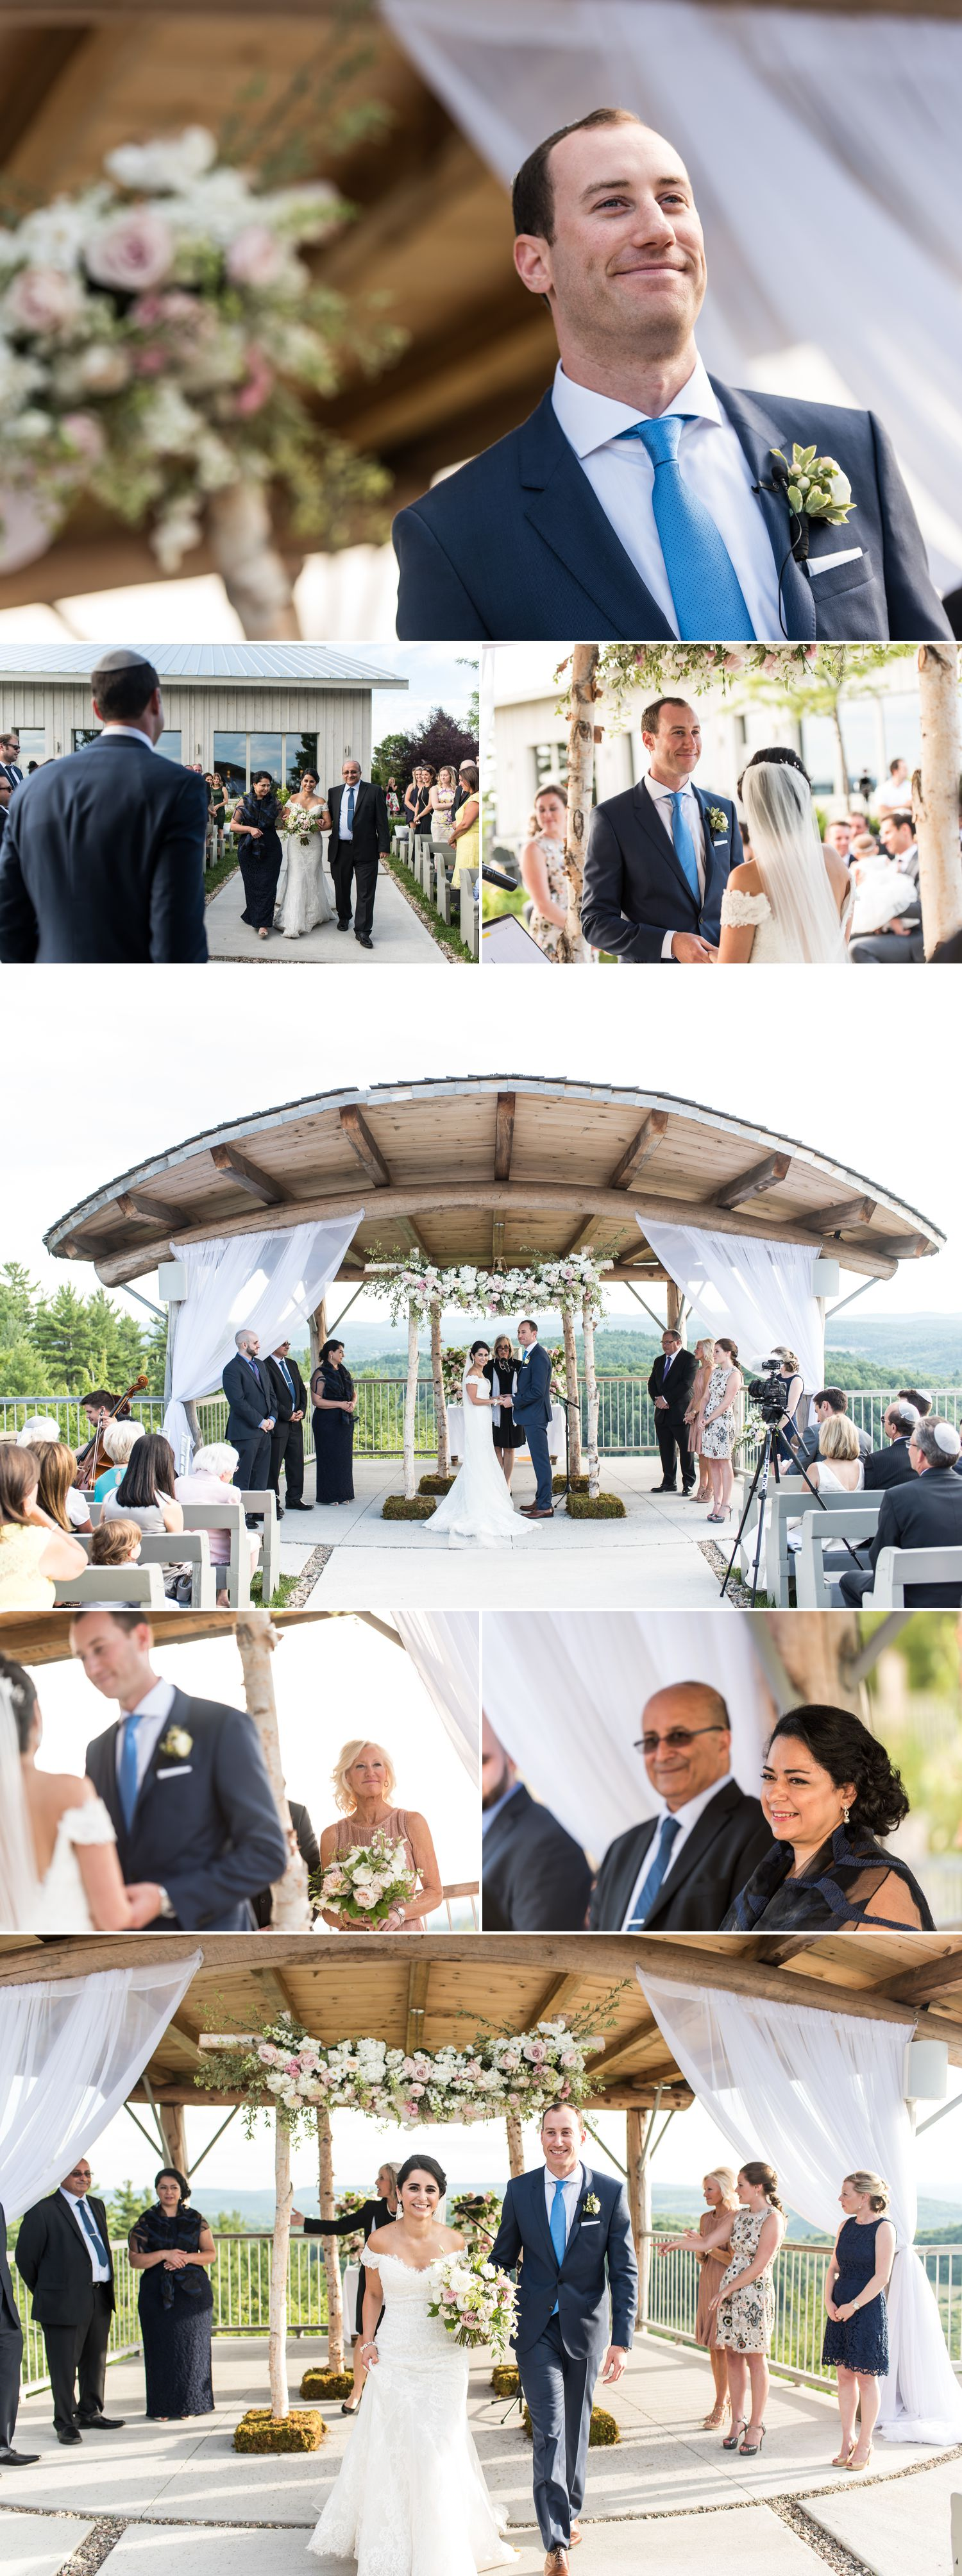 A wedding reception outside at Le Belvedere in Wakefield